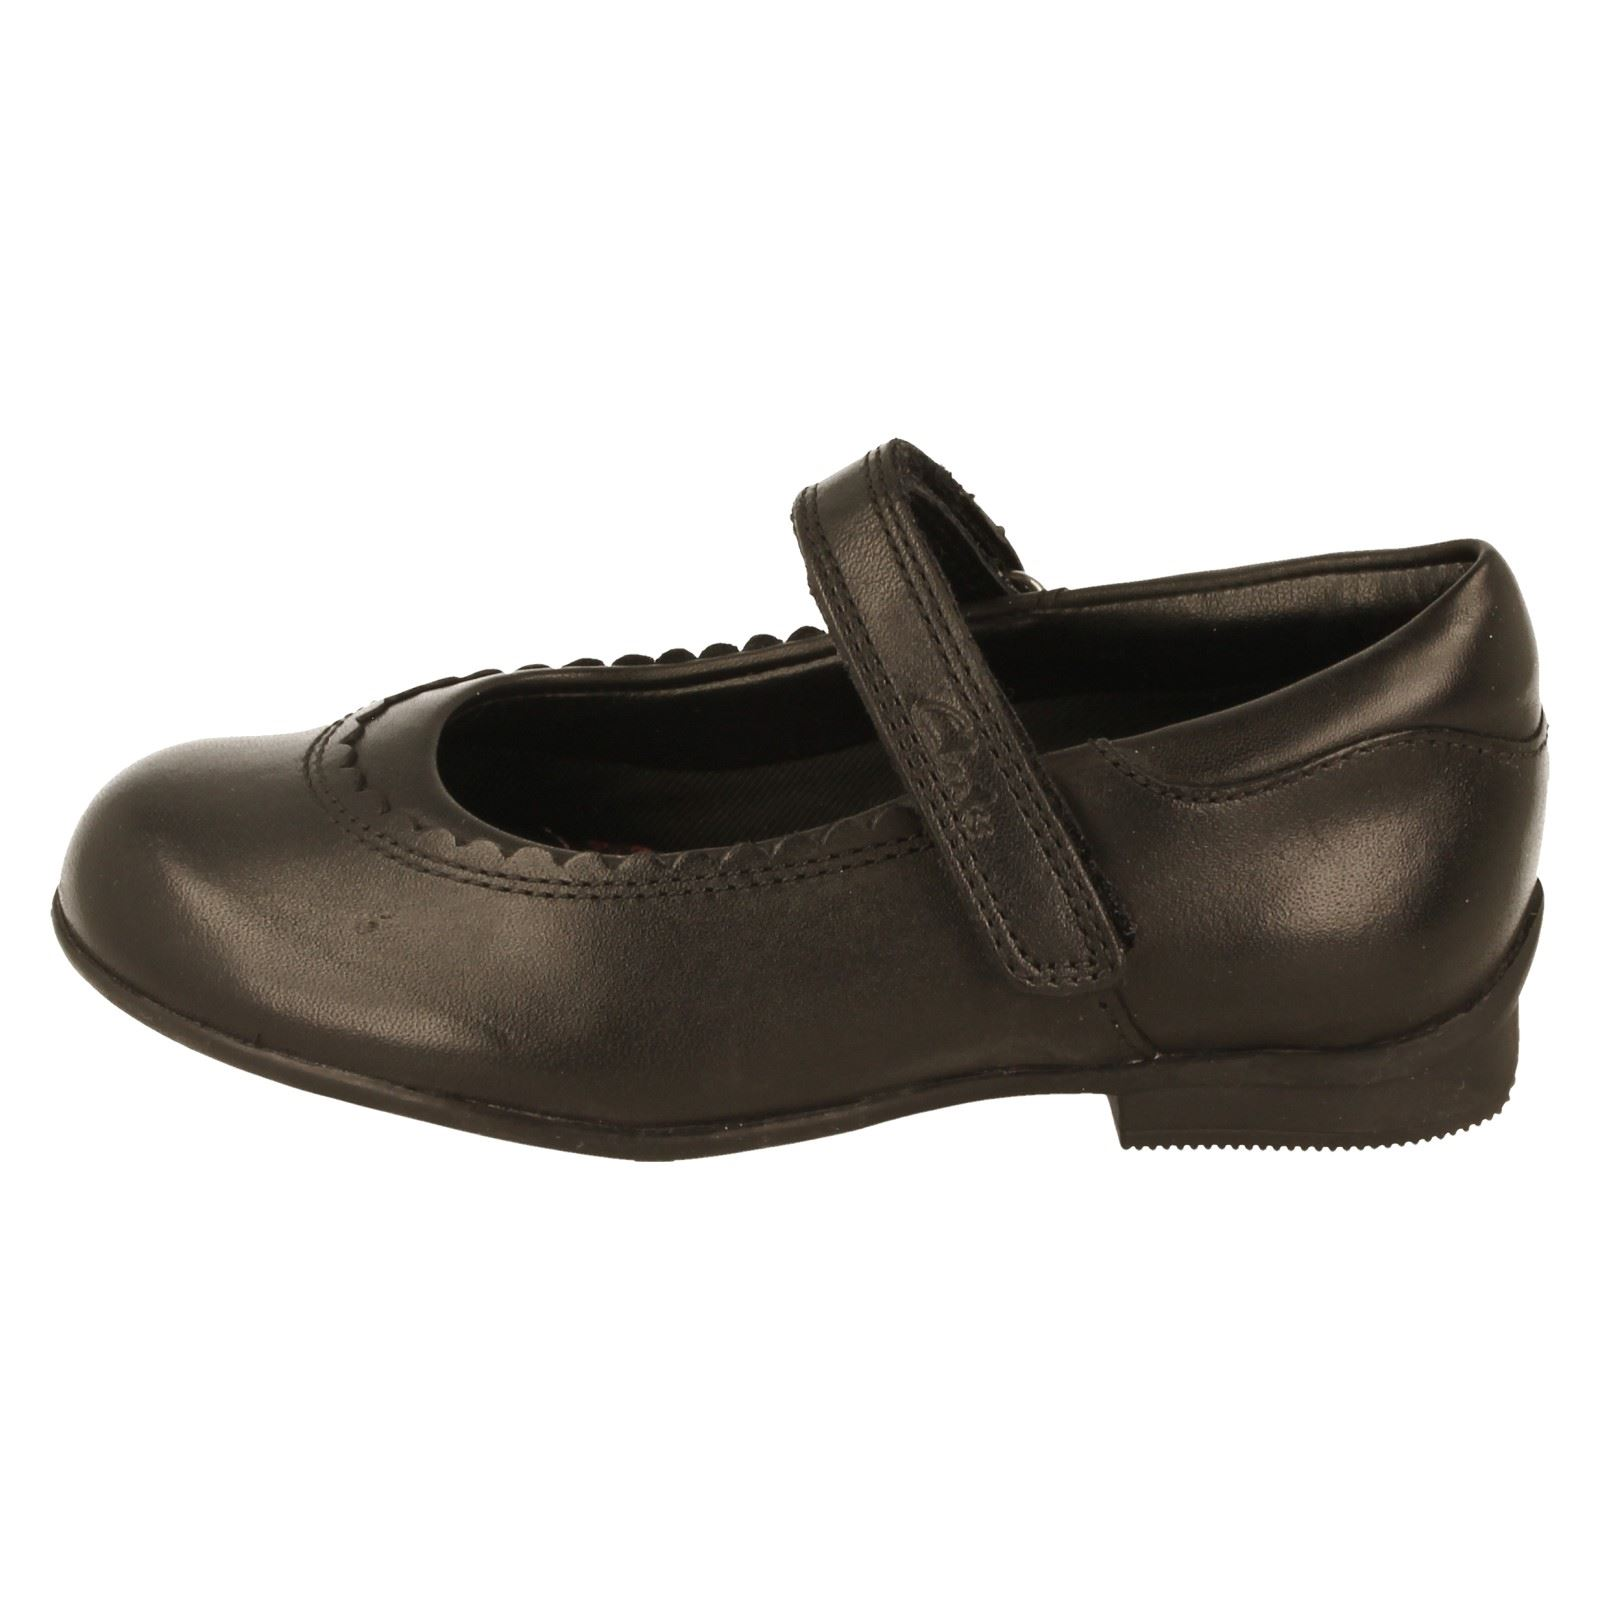 Girls Clarks Mary Jane Shoes The Style Dolly Twist -W